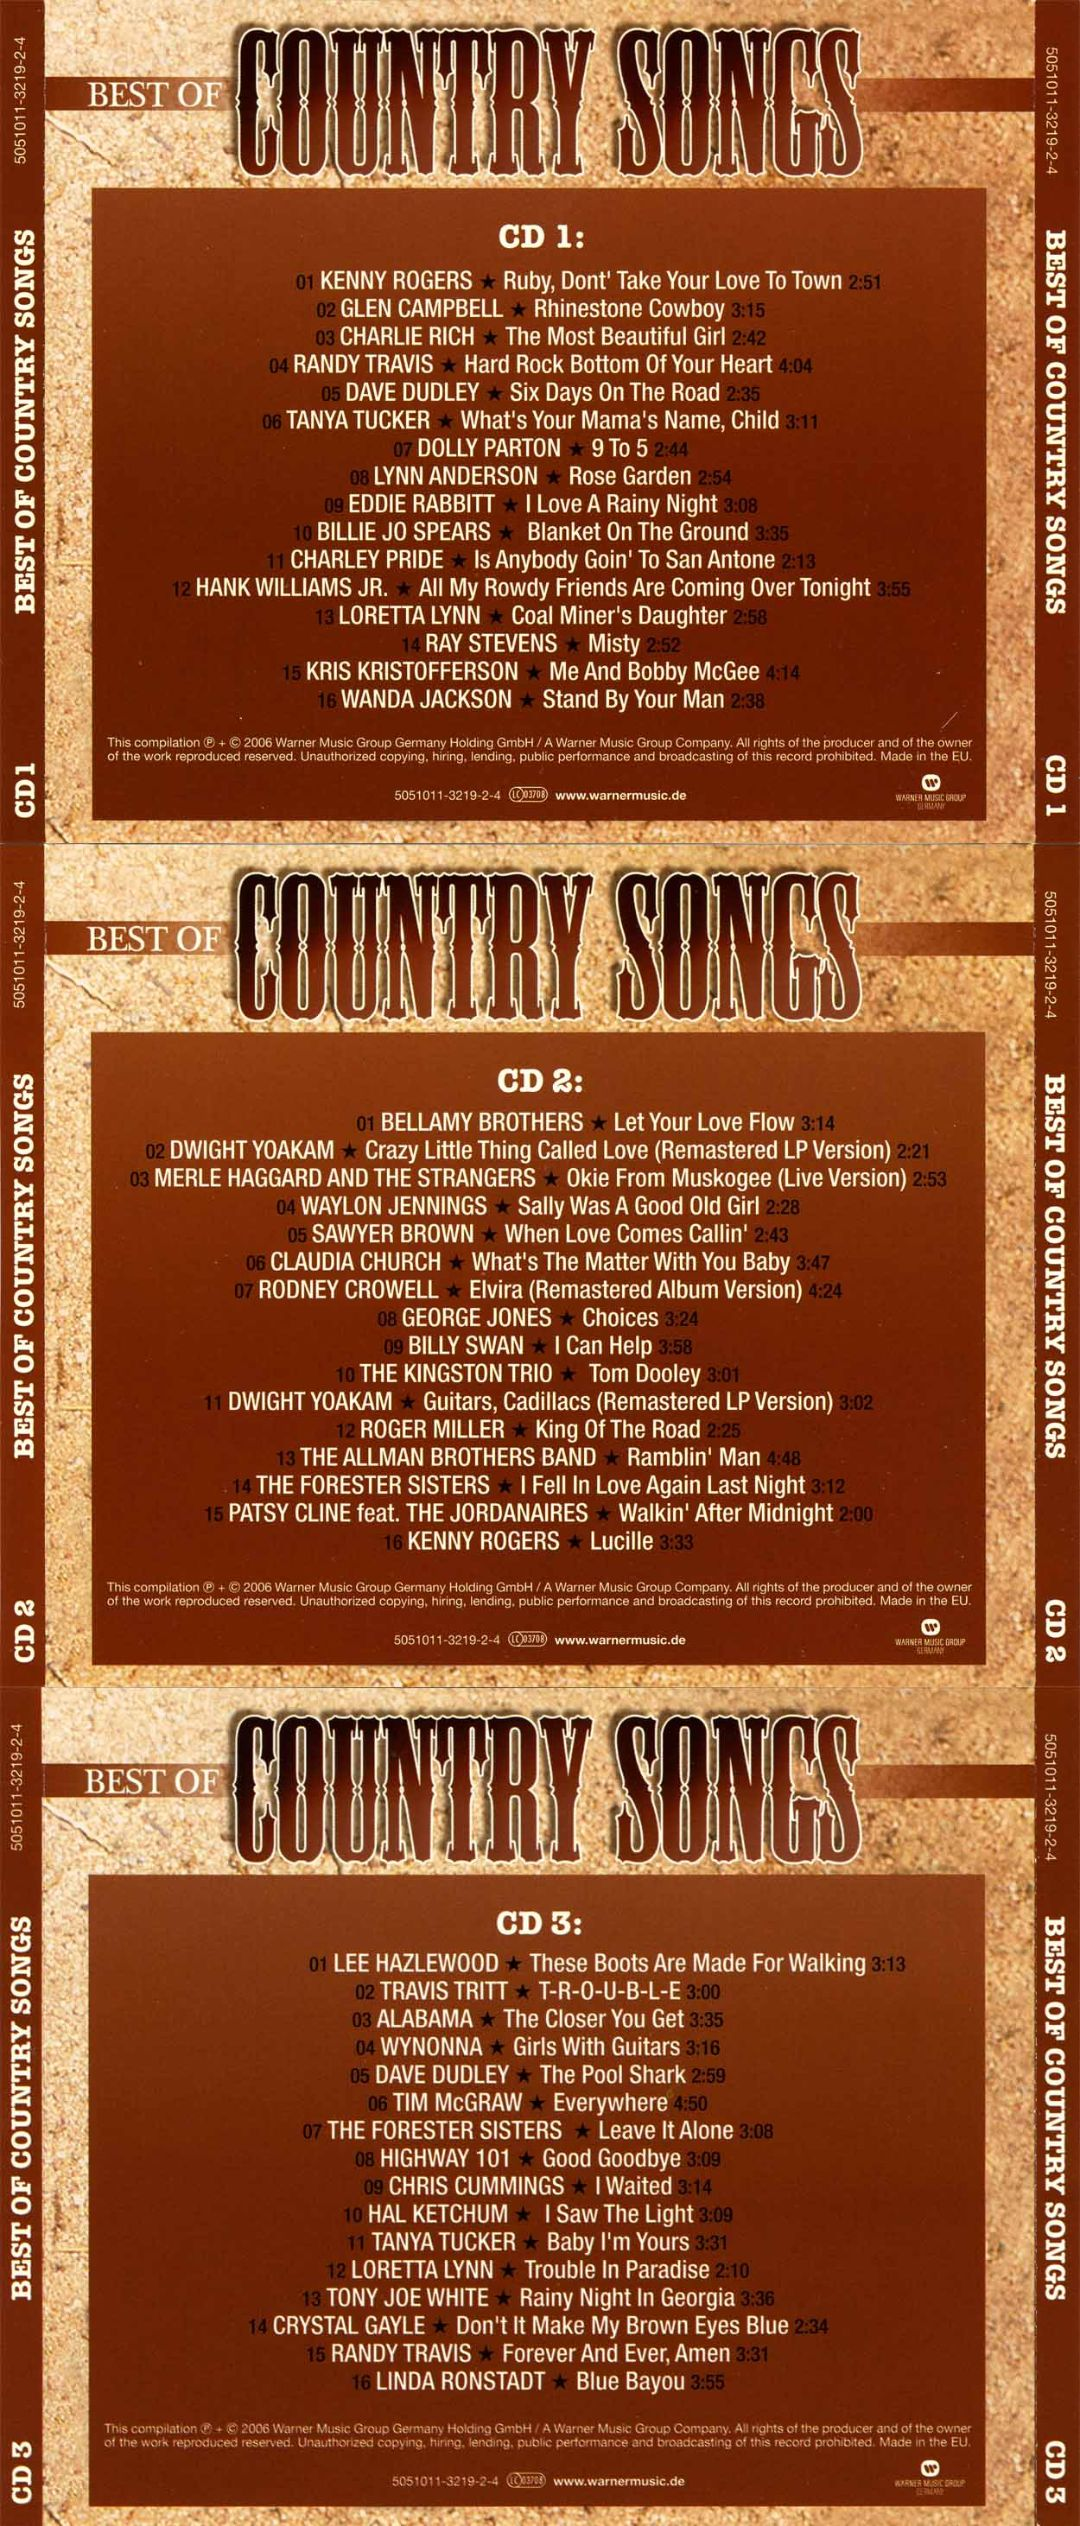 Best of Country Songs